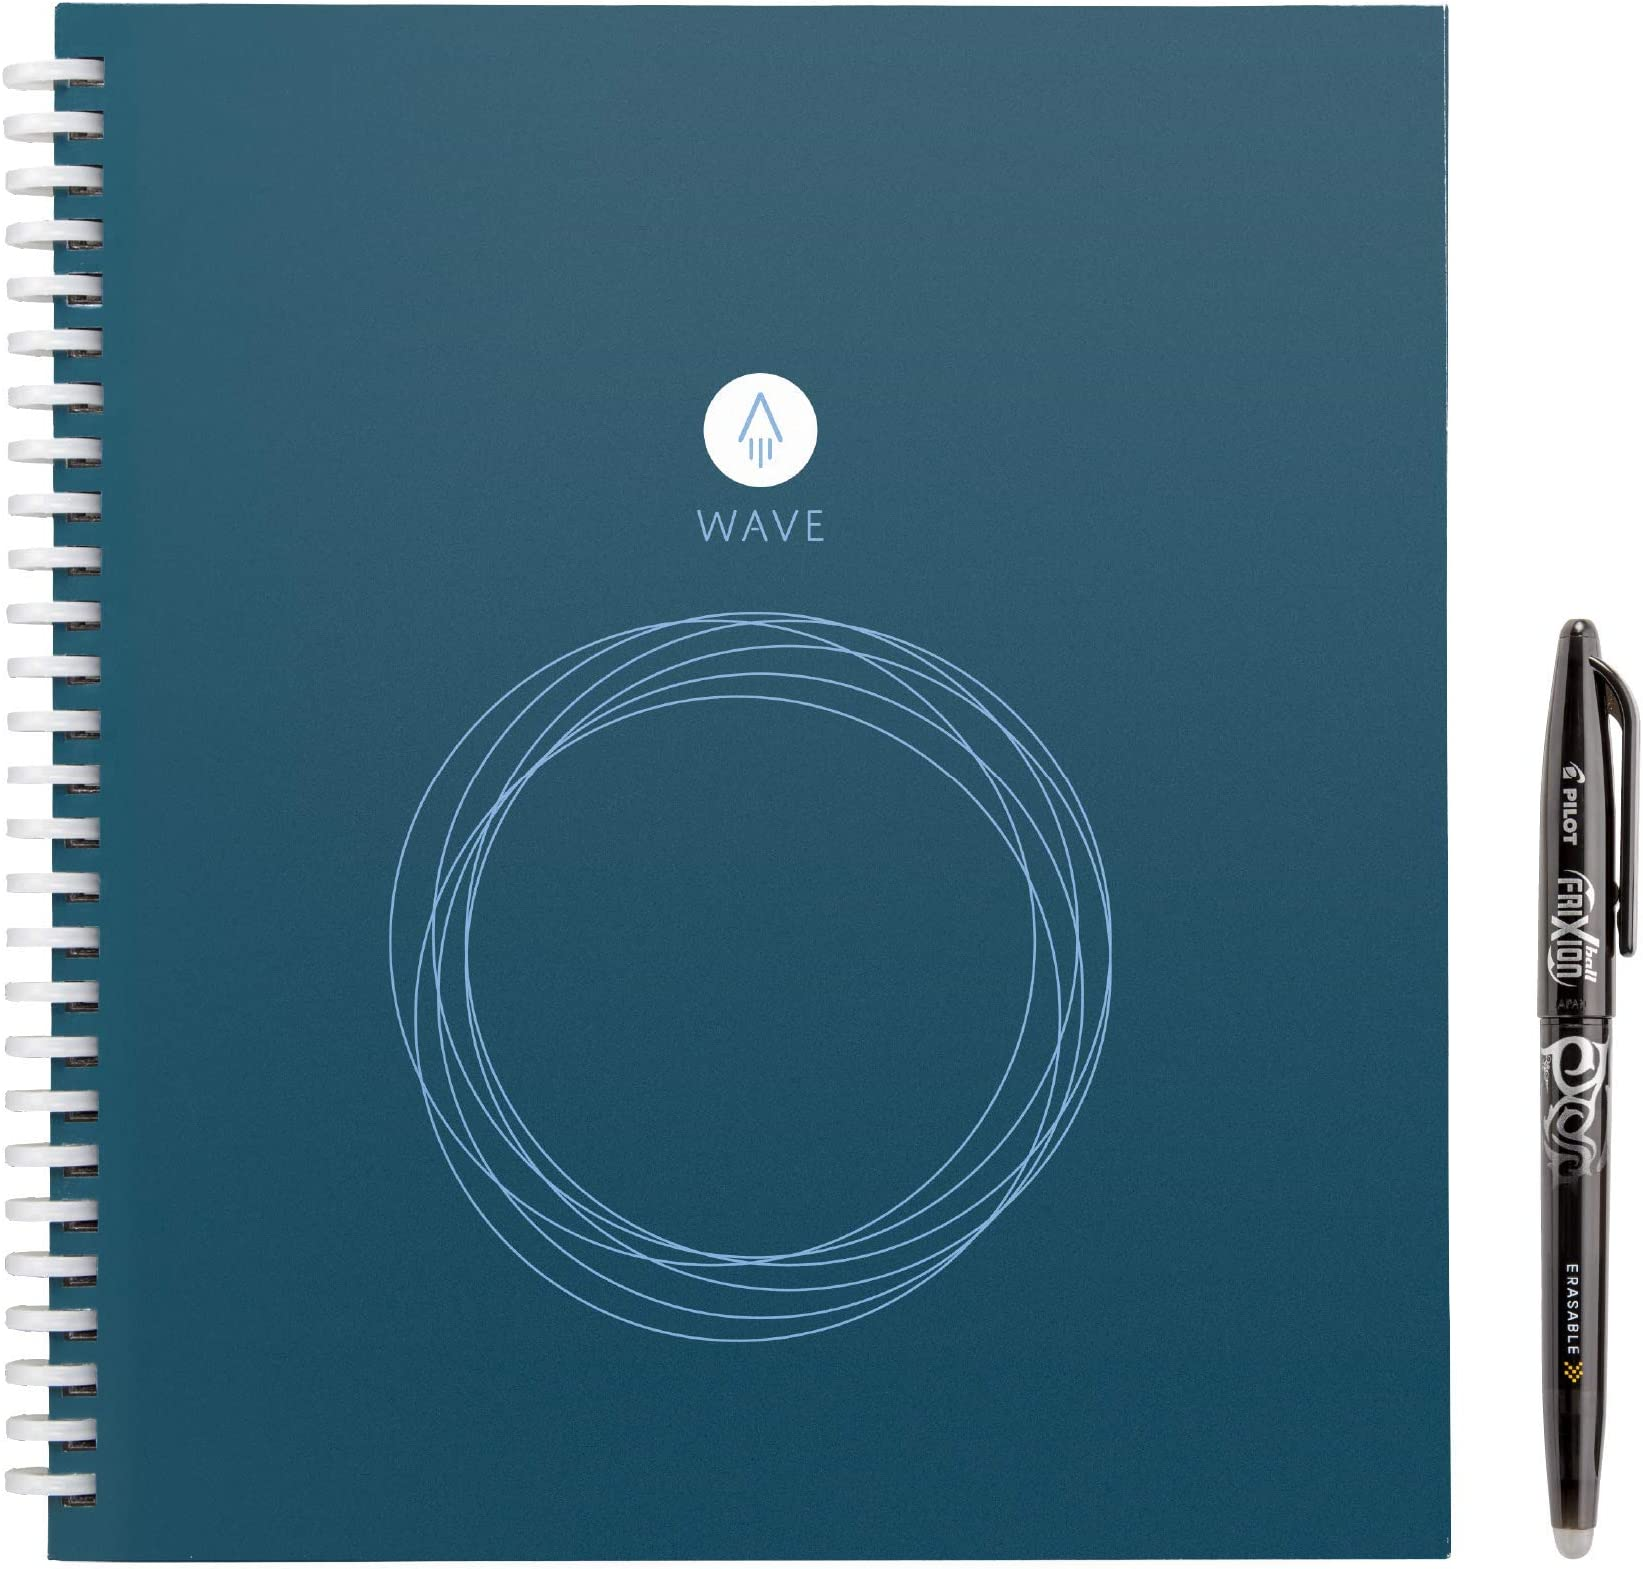 "Rocketbook Wave Smart Notebook - Dotted Grid Eco-Friendly Notebook with 1 Pilot Frixion Pen Included - Standard Size (8.5"" x 9.5""), BLUE (WAV-S)"